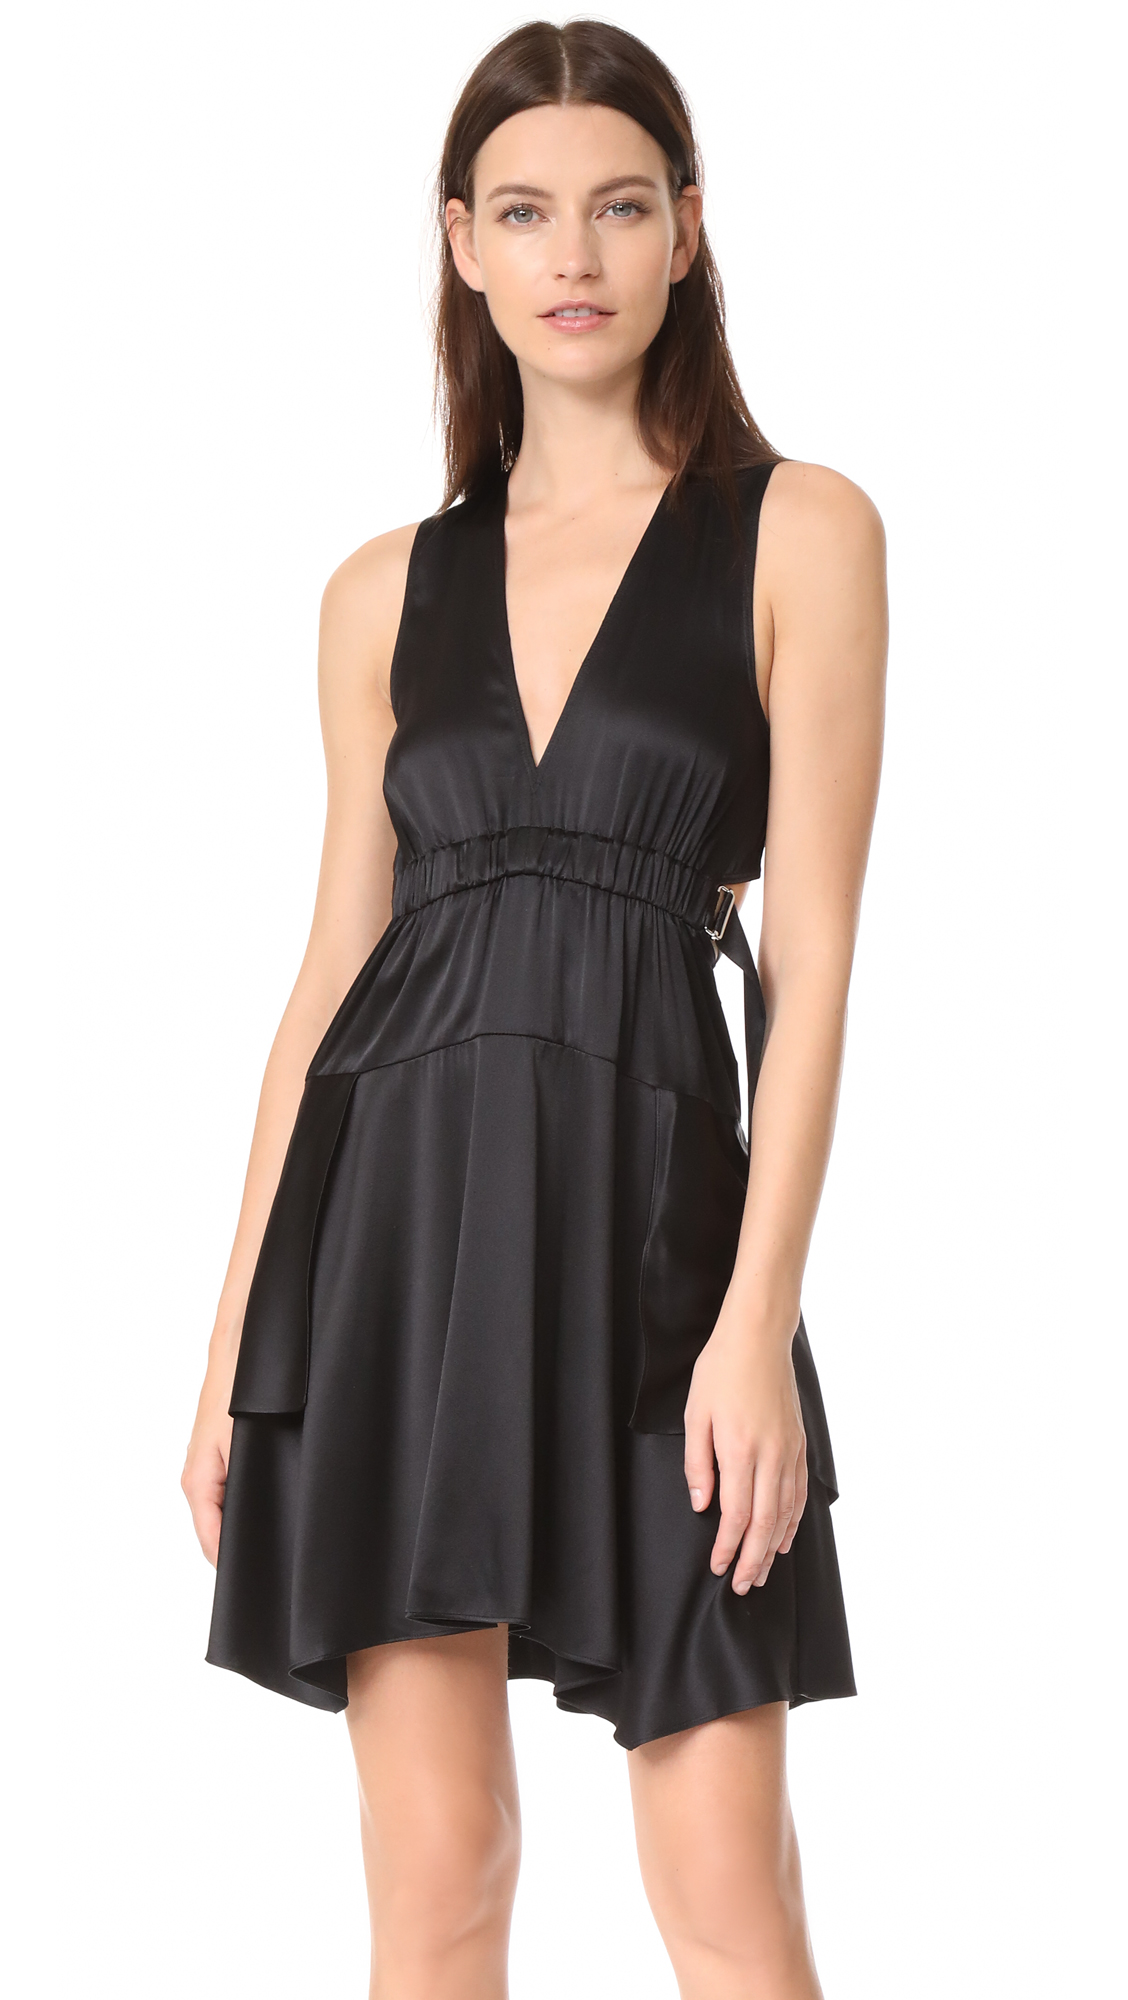 A.L.C. Nahia Dress - Black